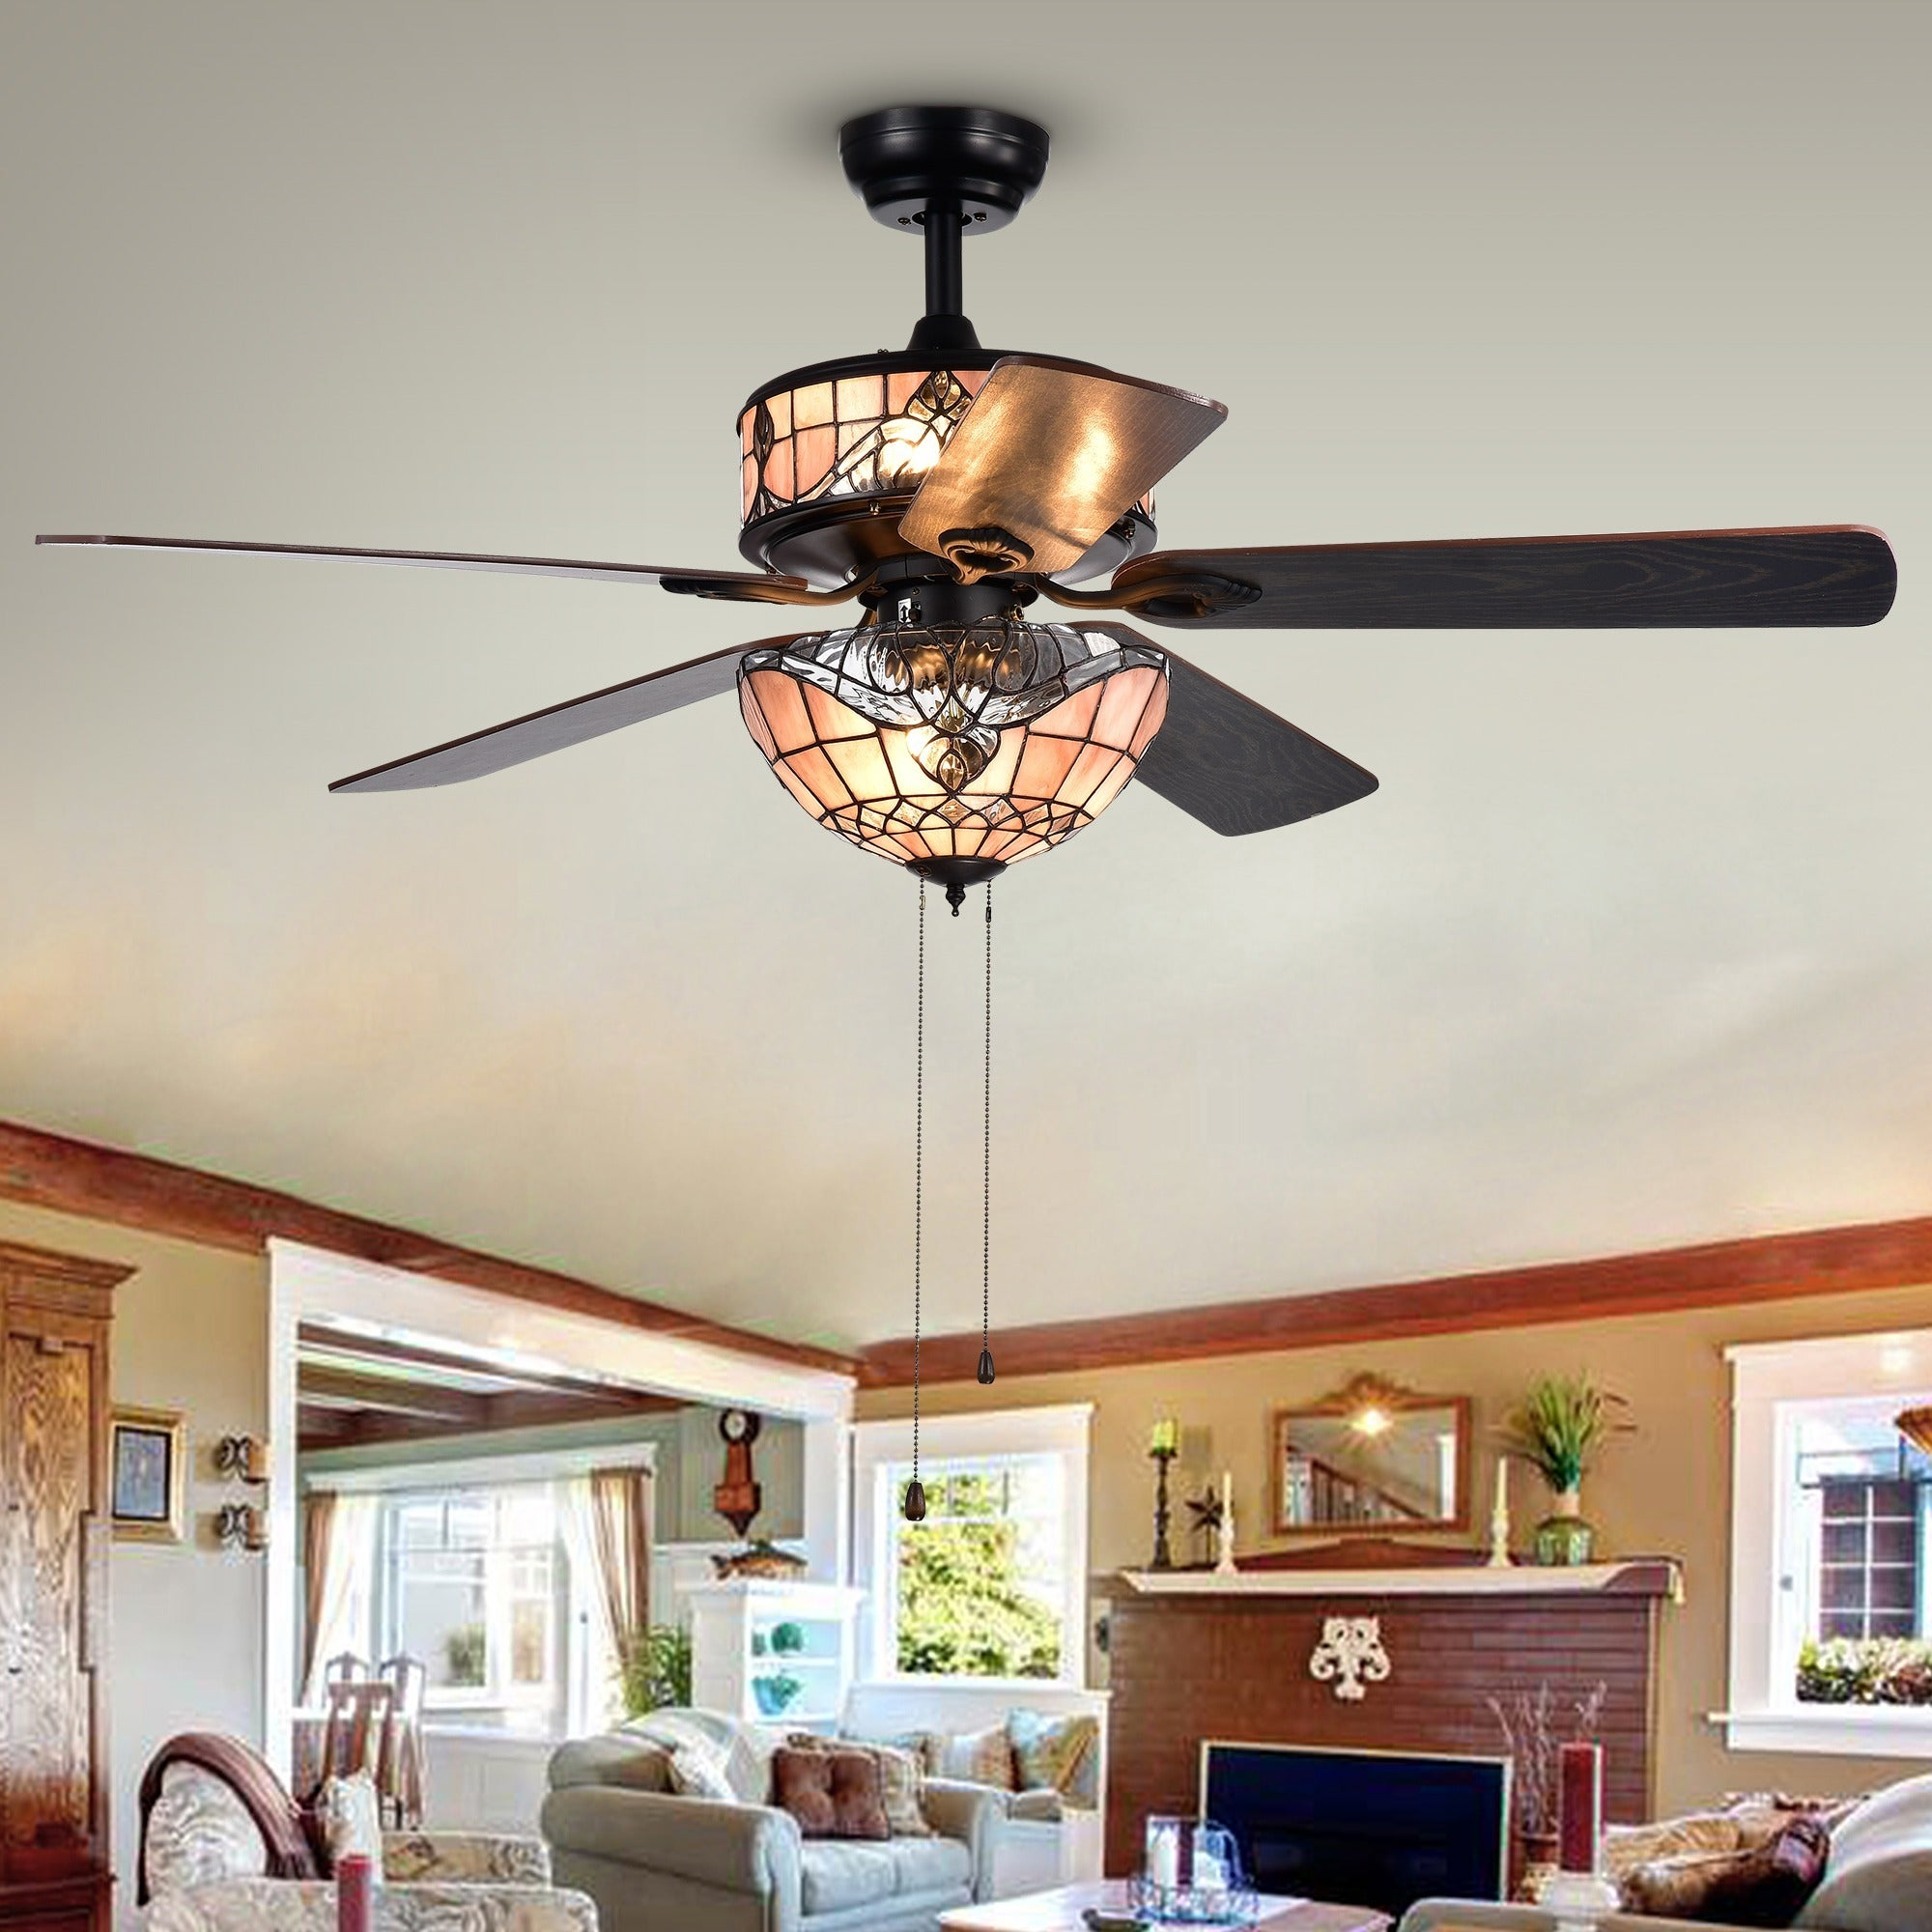 shades glass lamp design globe home ceiling vanity replacement regarding tiffany for your fan lighting shade comfy neck